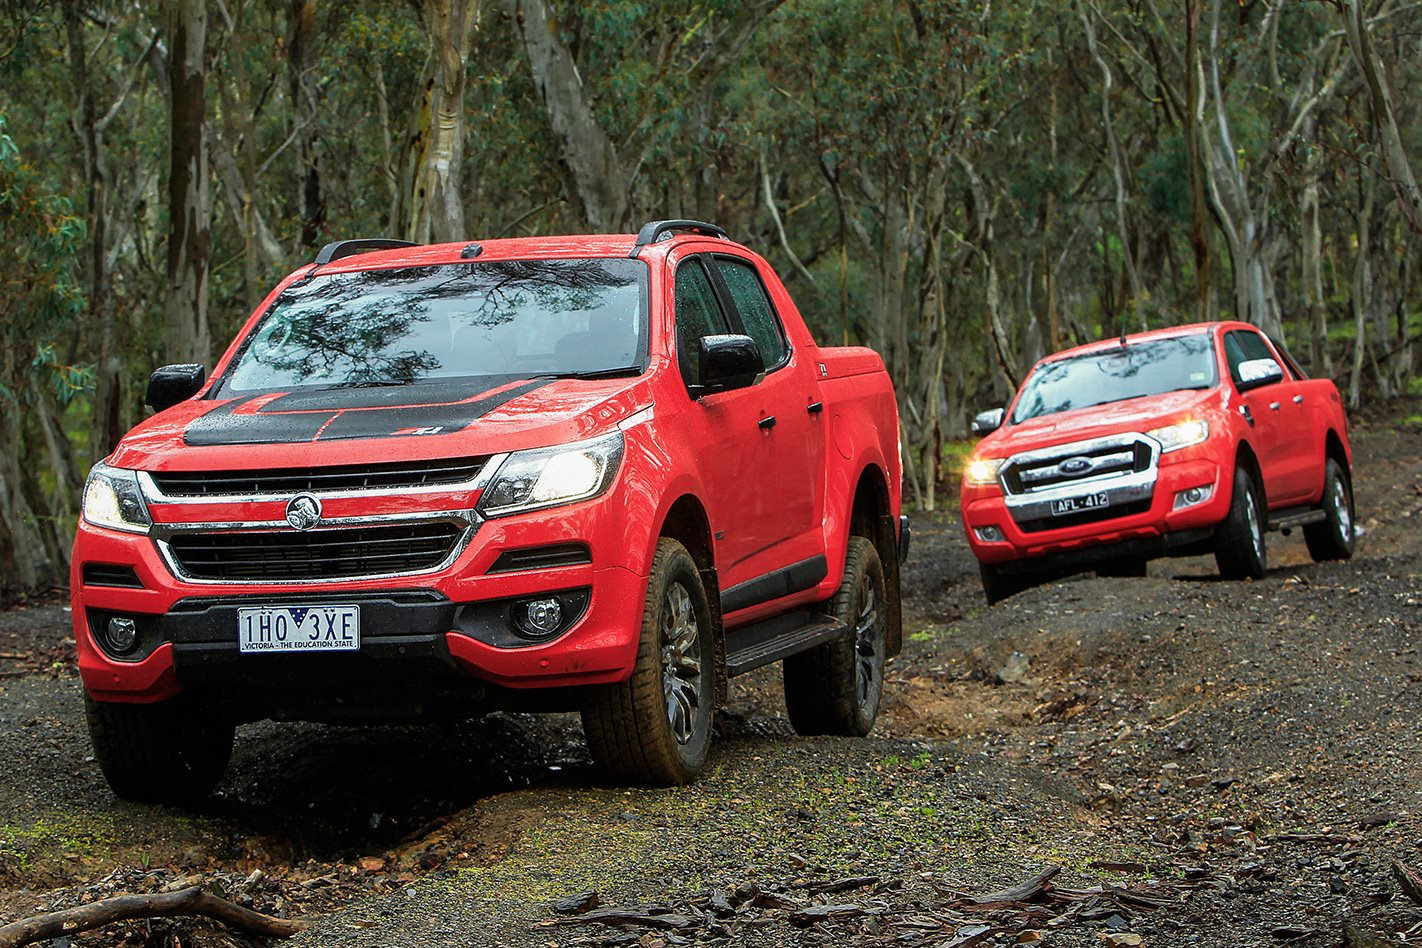 hight resolution of holden colorado z71 vs ford ranger xlt comparison review